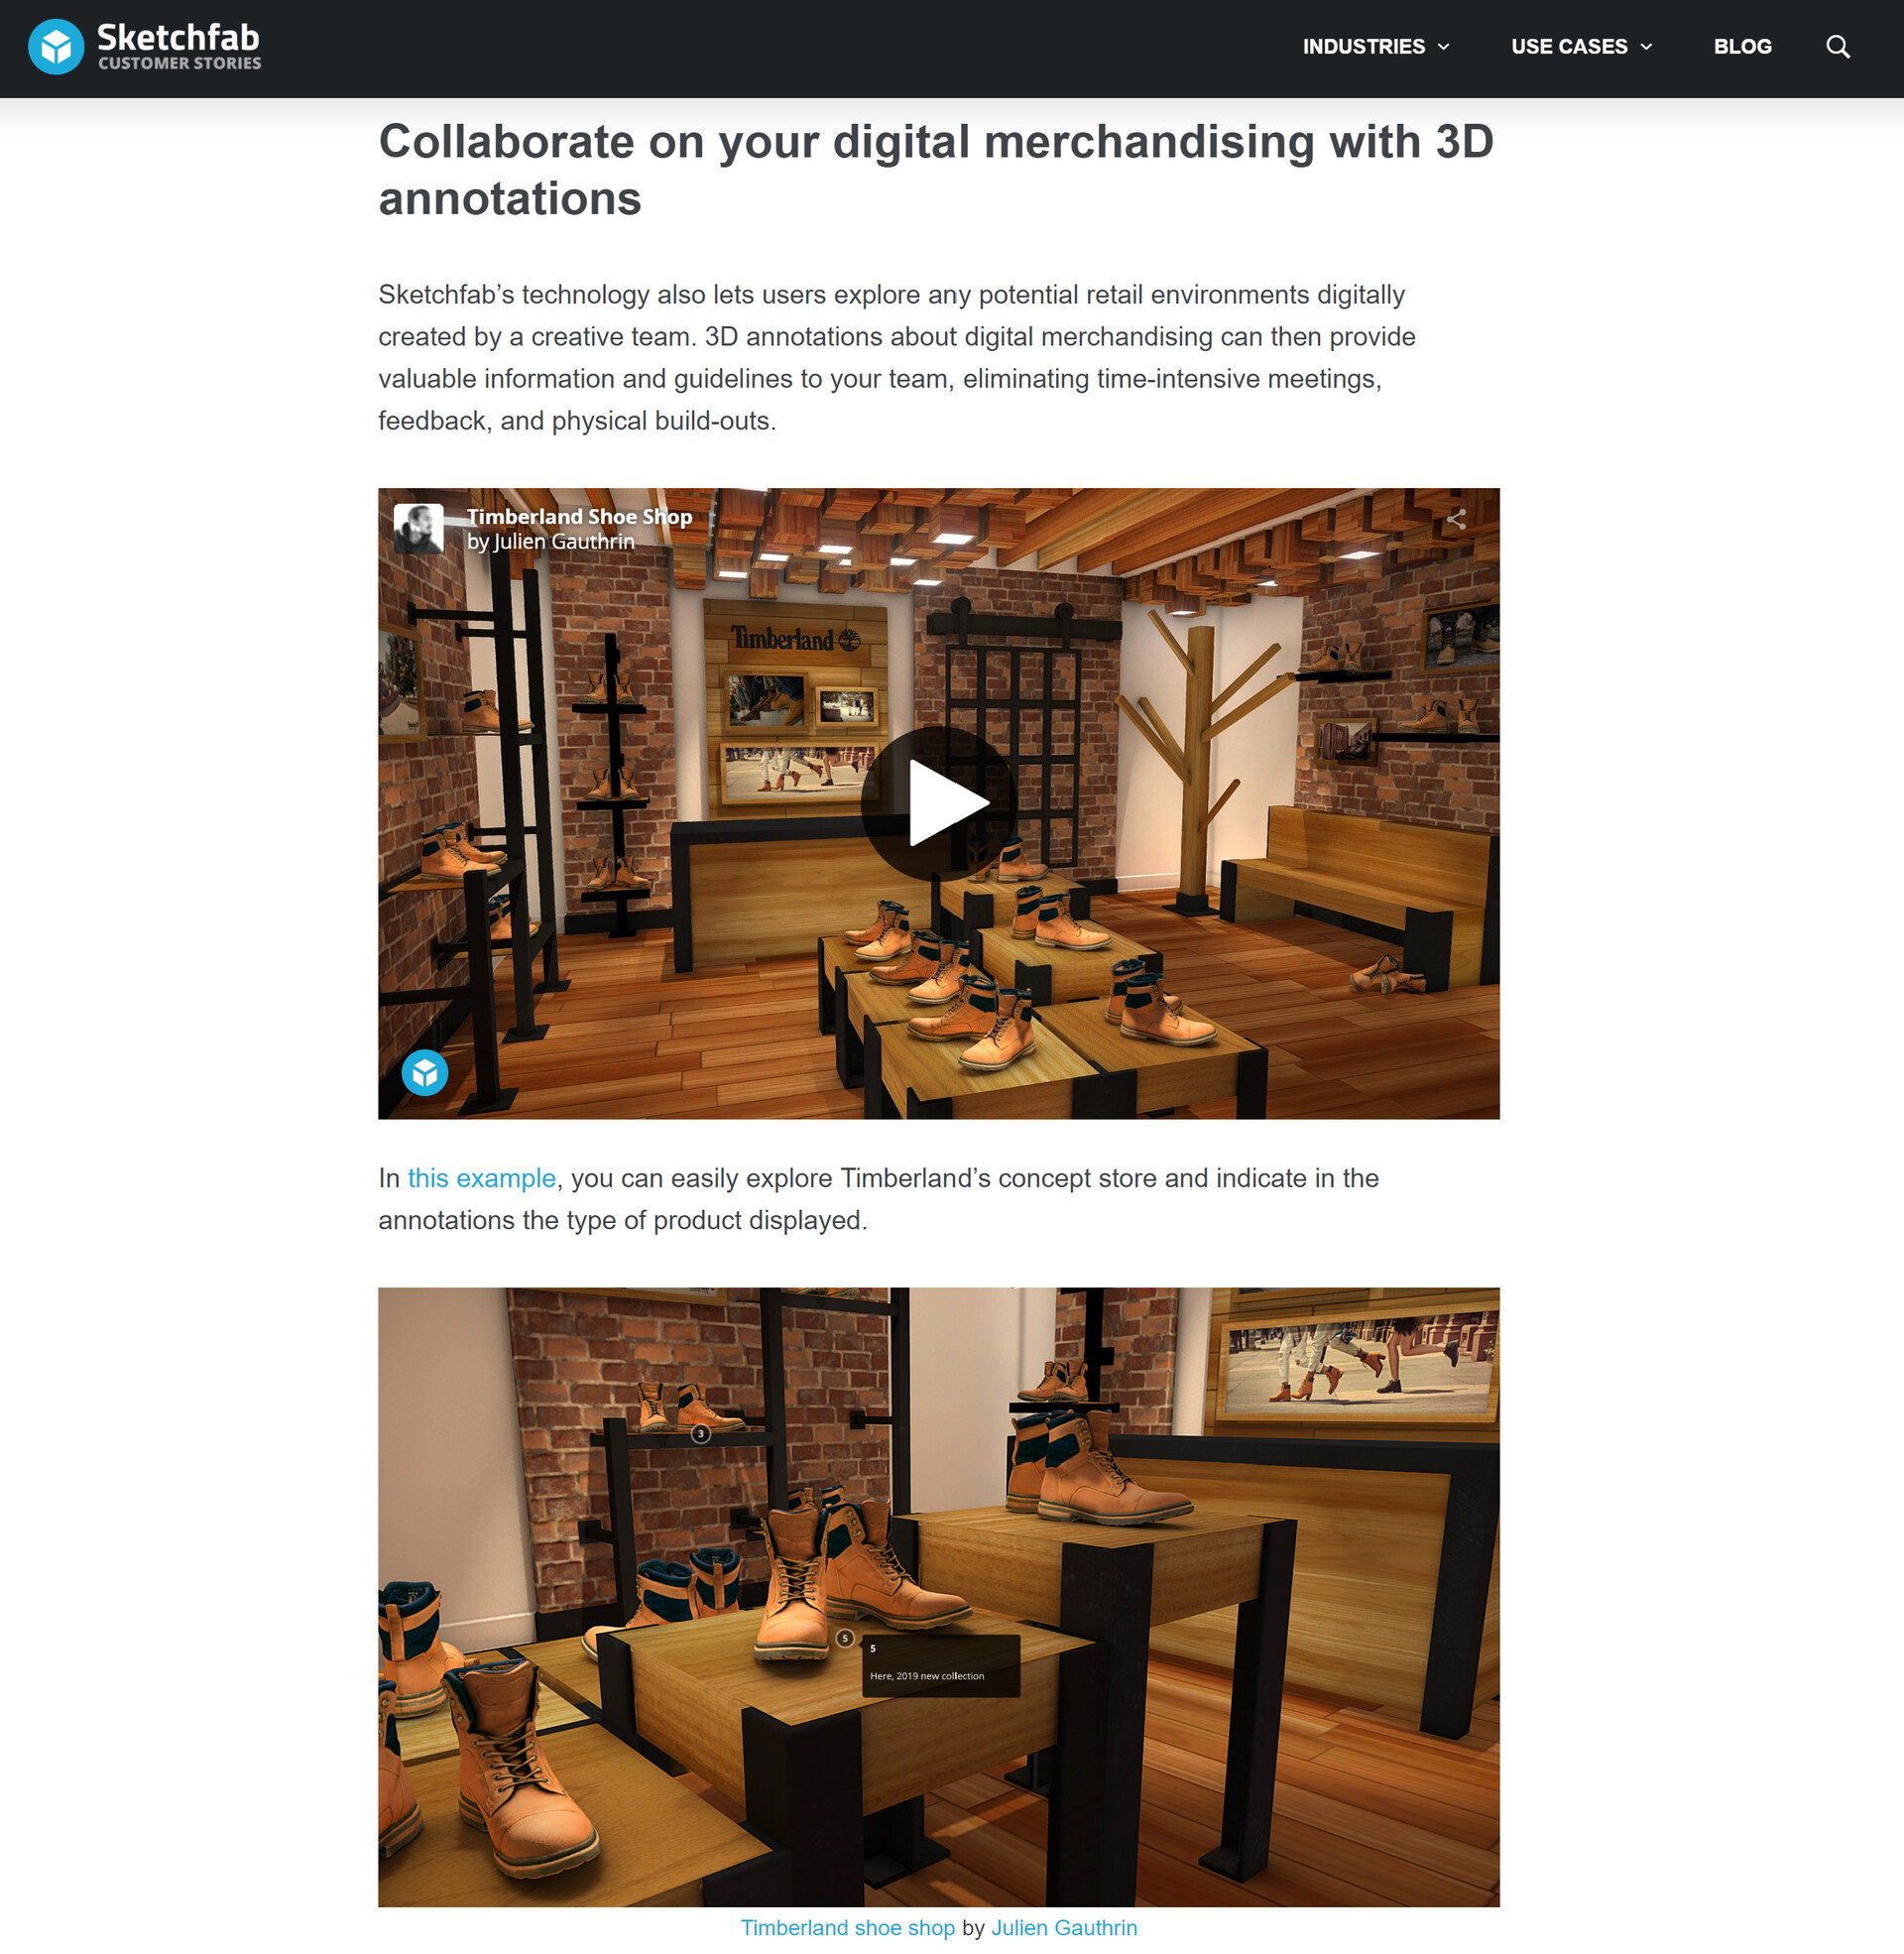 Nomx photo reference julien gauthrin sketchfab article julien gauthrin timberland shoe shop how to create engagement with 3d interactive product descriptions